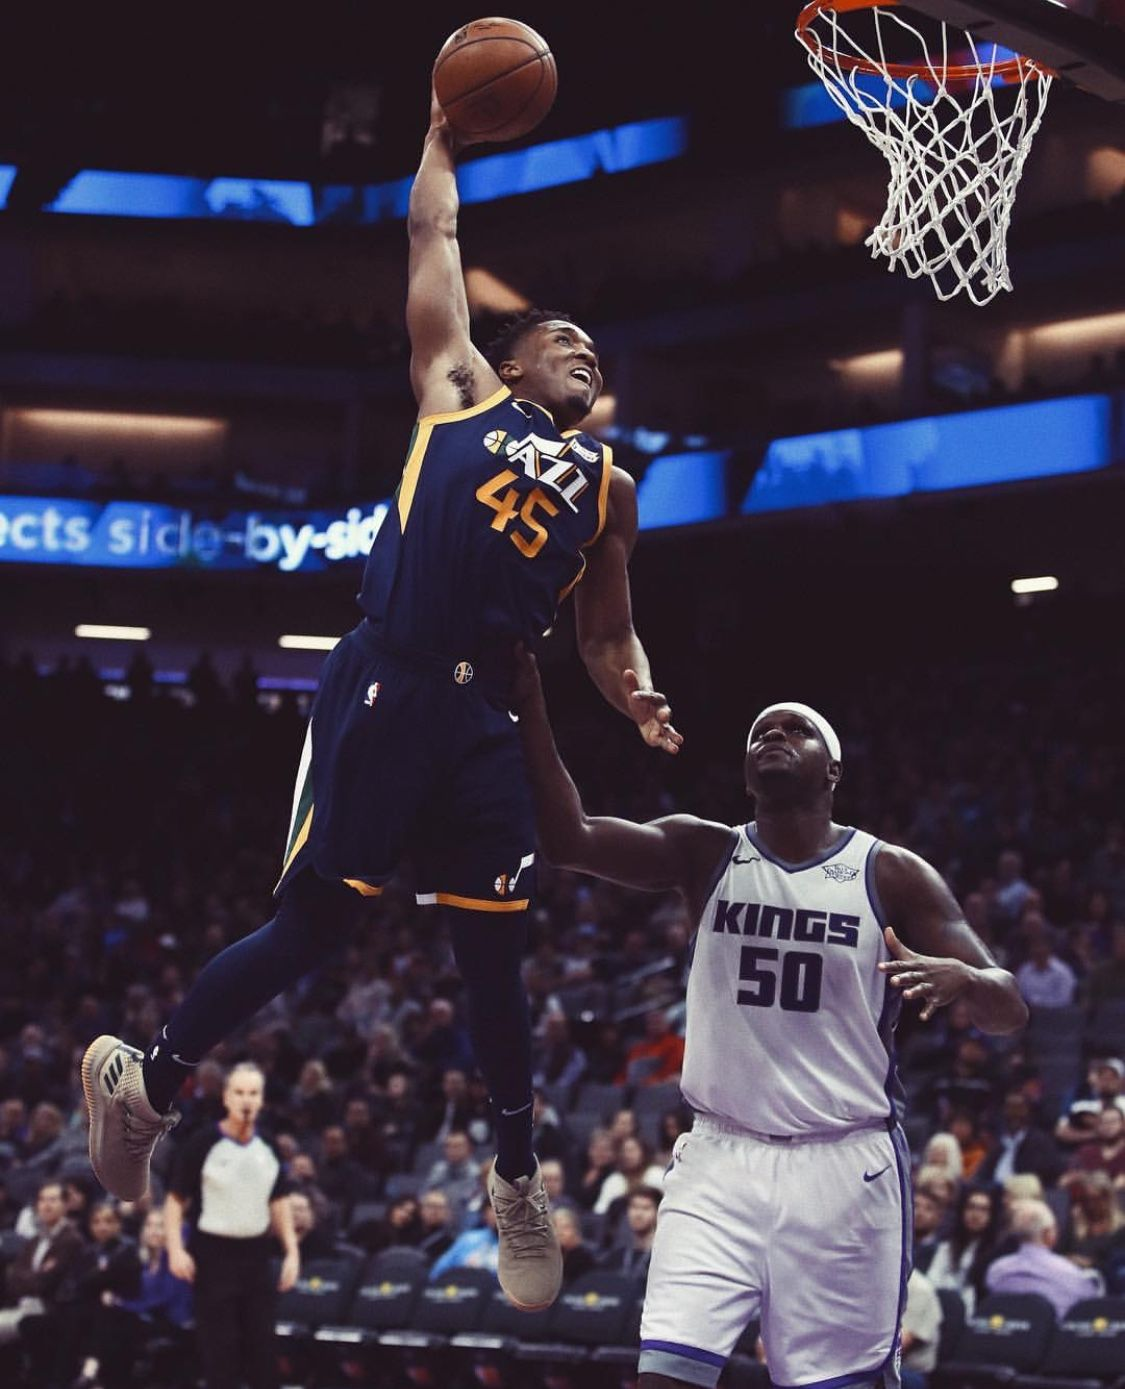 purchase cheap 30345 0b714 Donovan Mitchell is not normal   Hoopers   Donovan mitchell ...